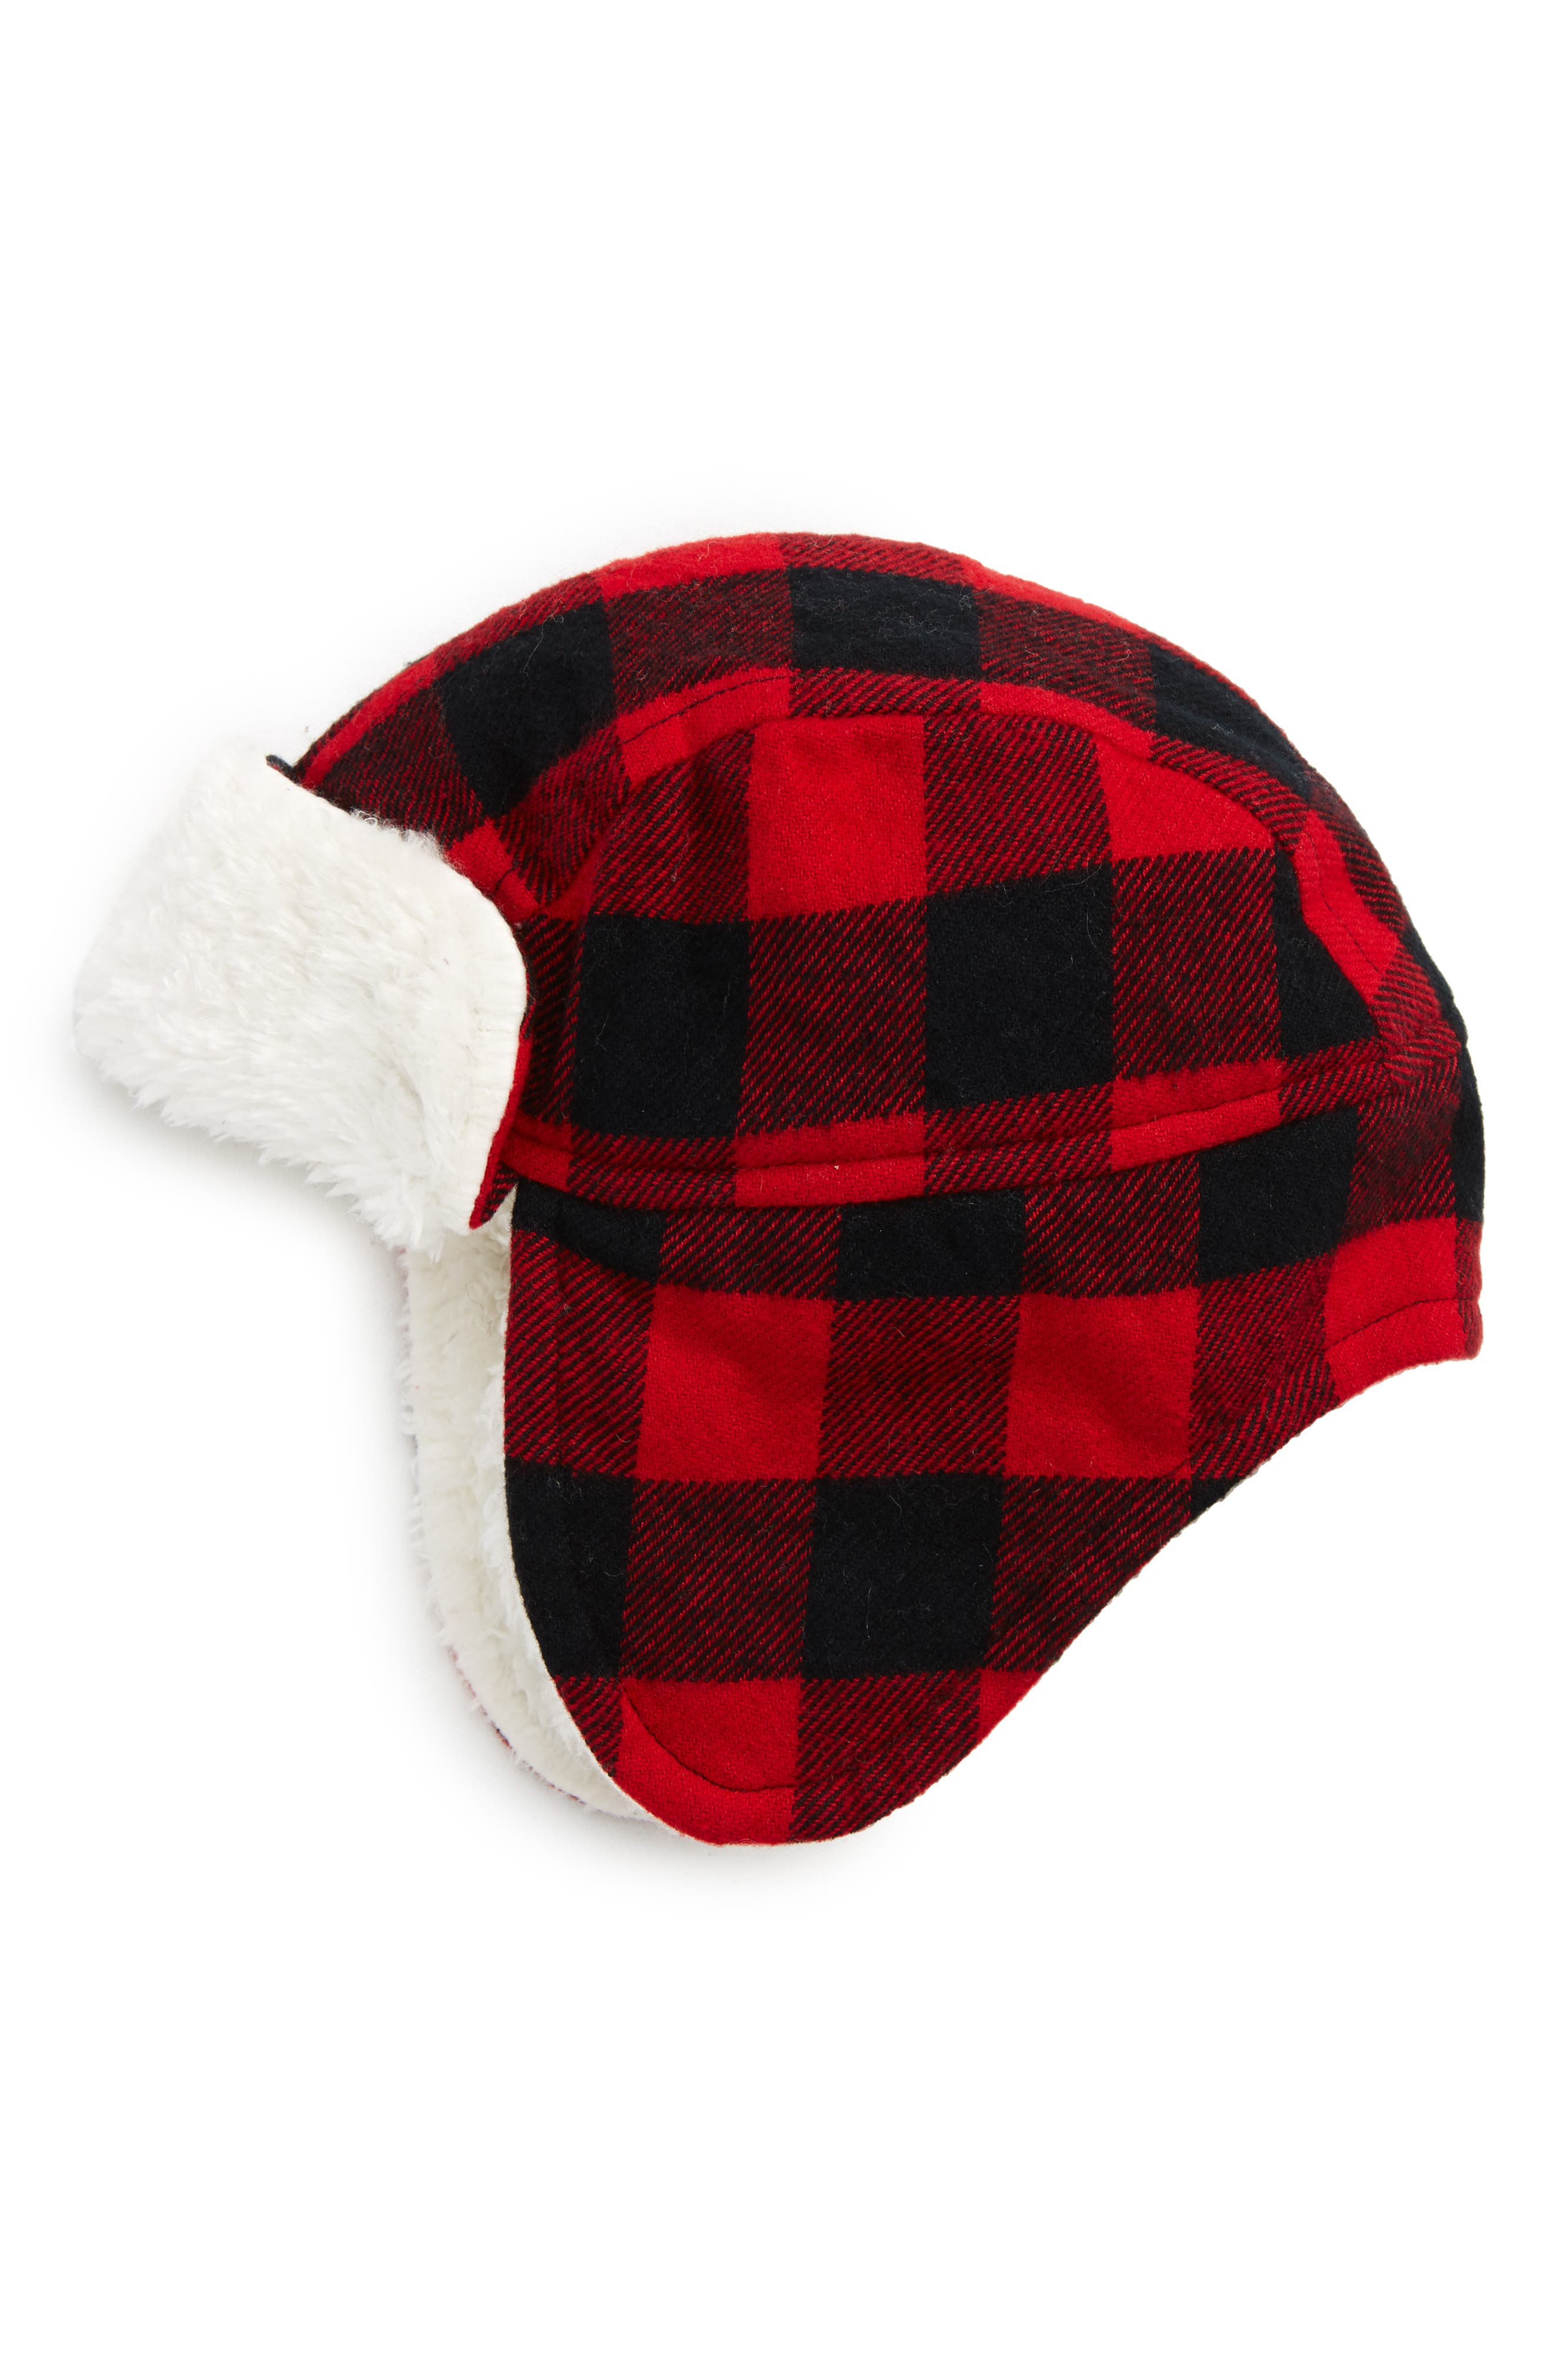 Flight Hat,                             Main thumbnail 1, color,                             Red Chili- Black Check